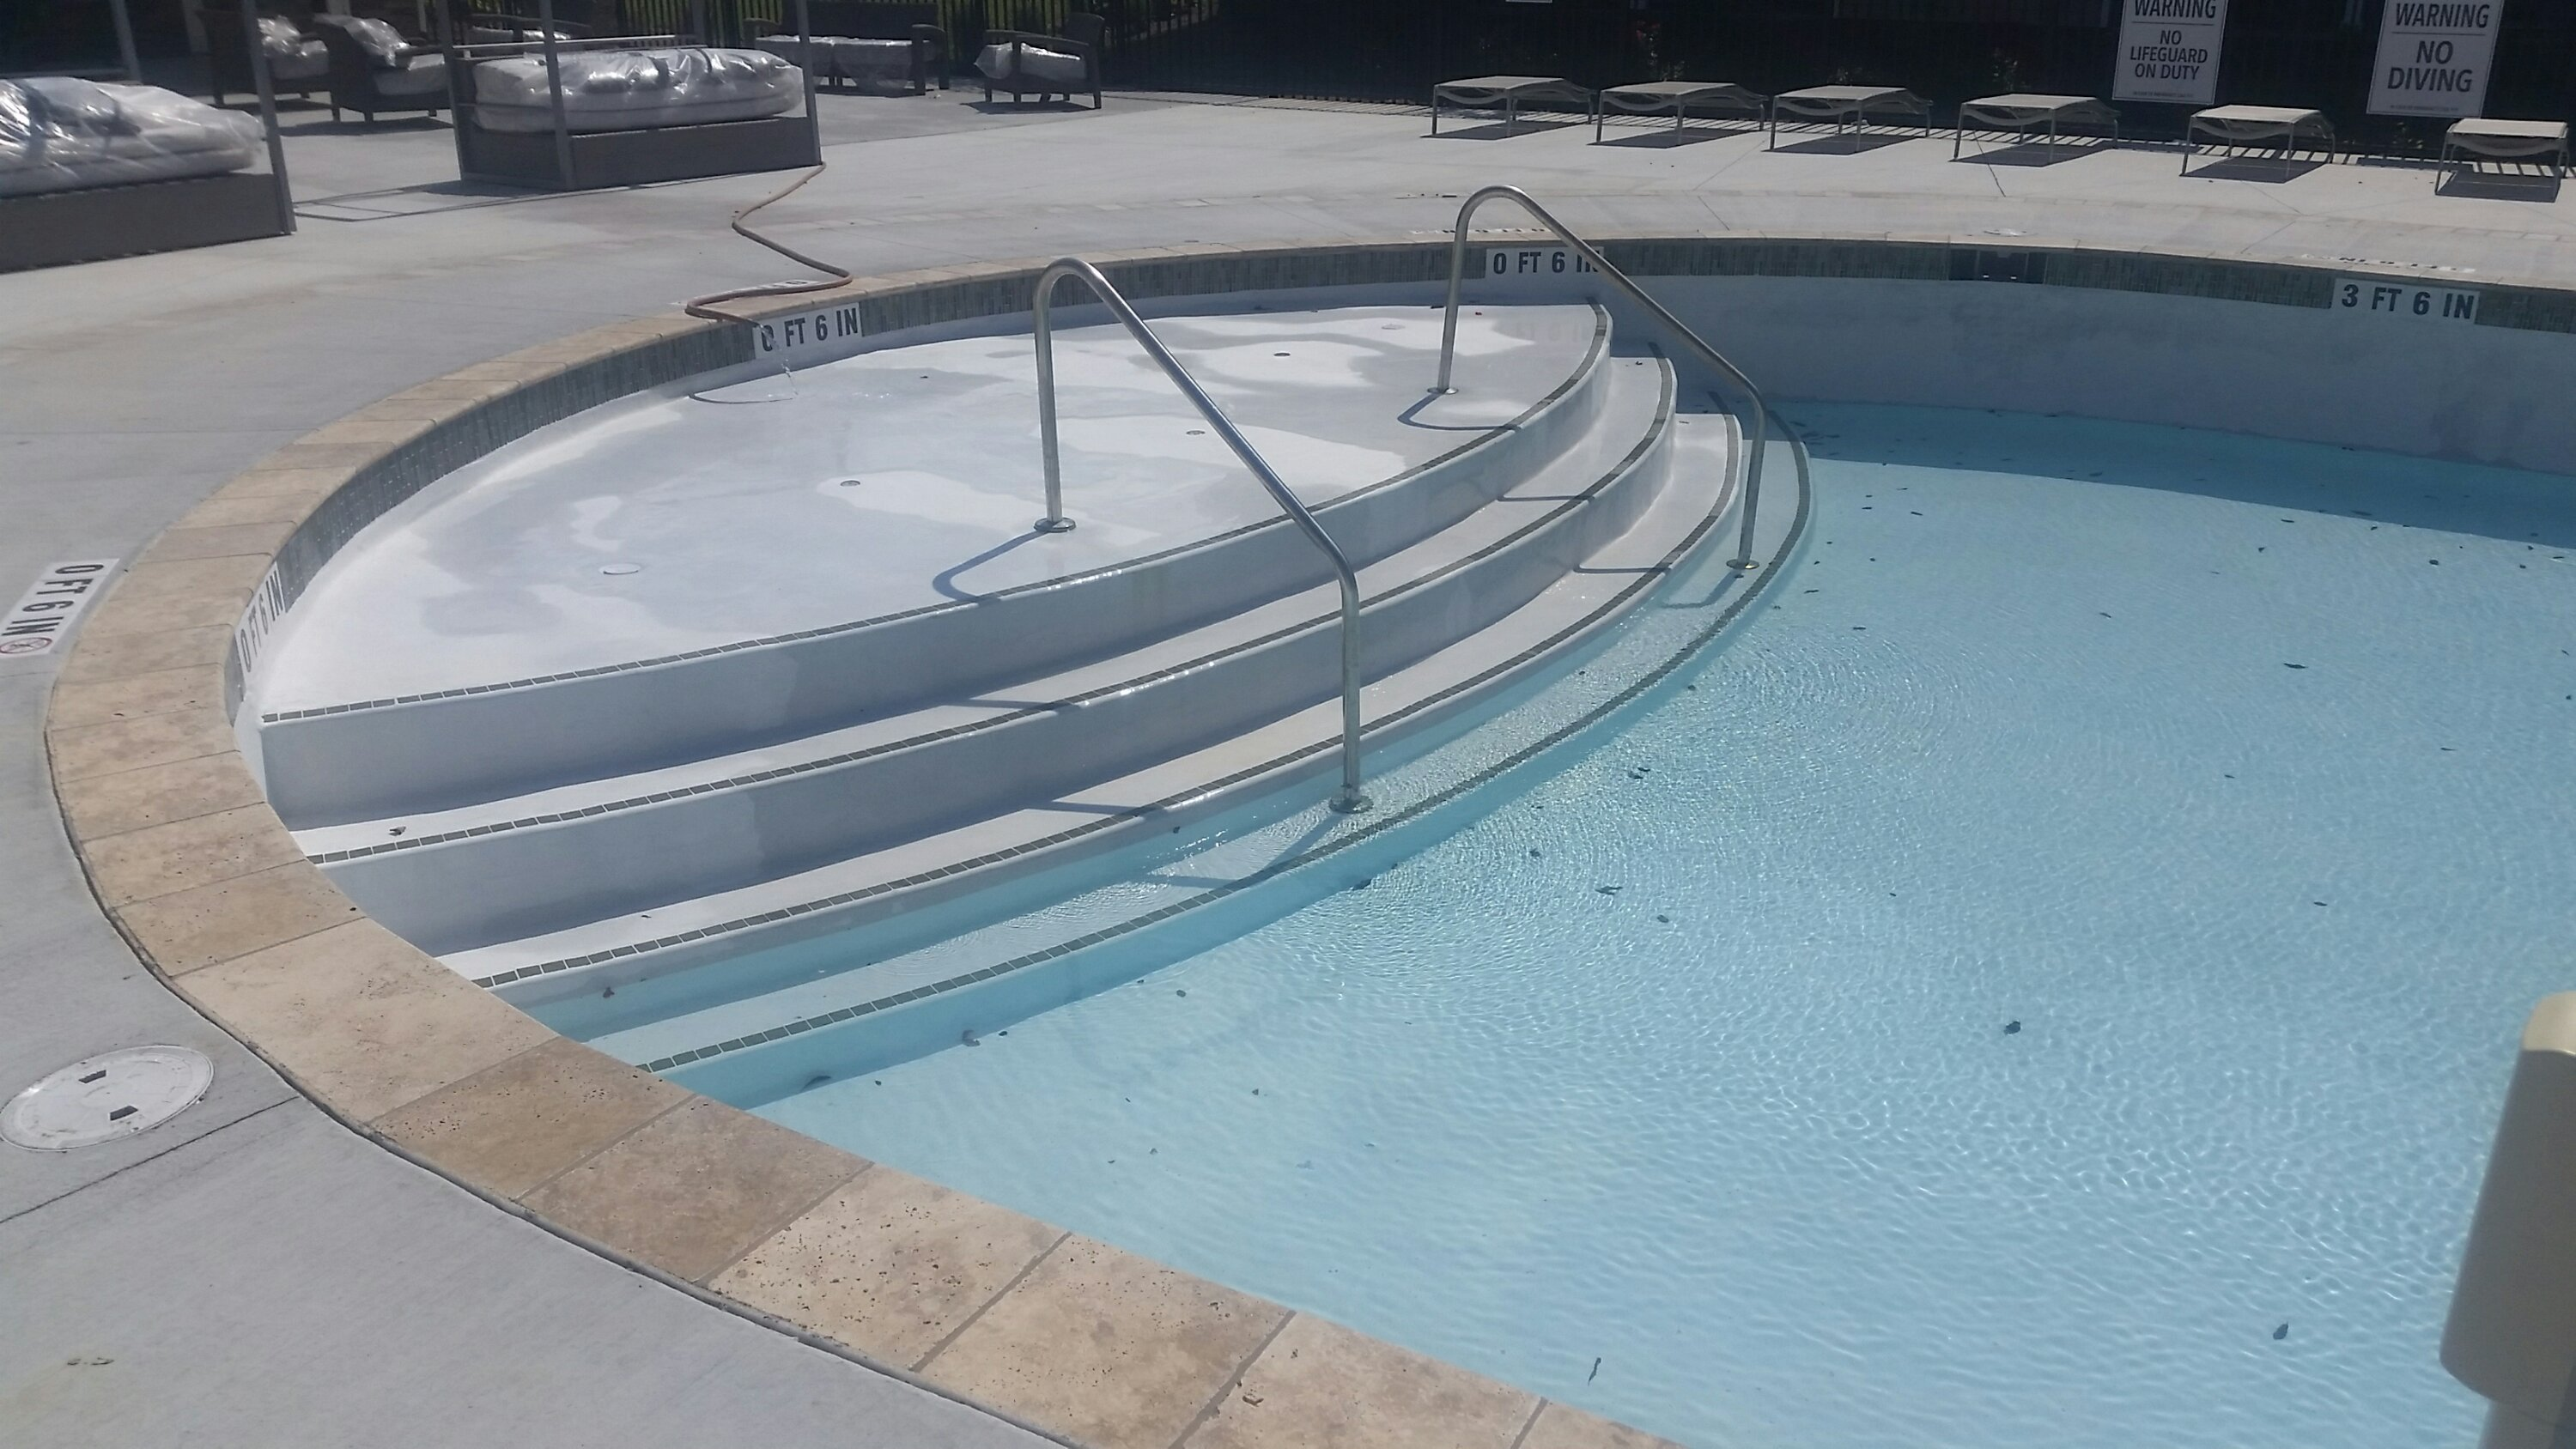 Pool leak repair nps leak detection How to fix a swimming pool leak